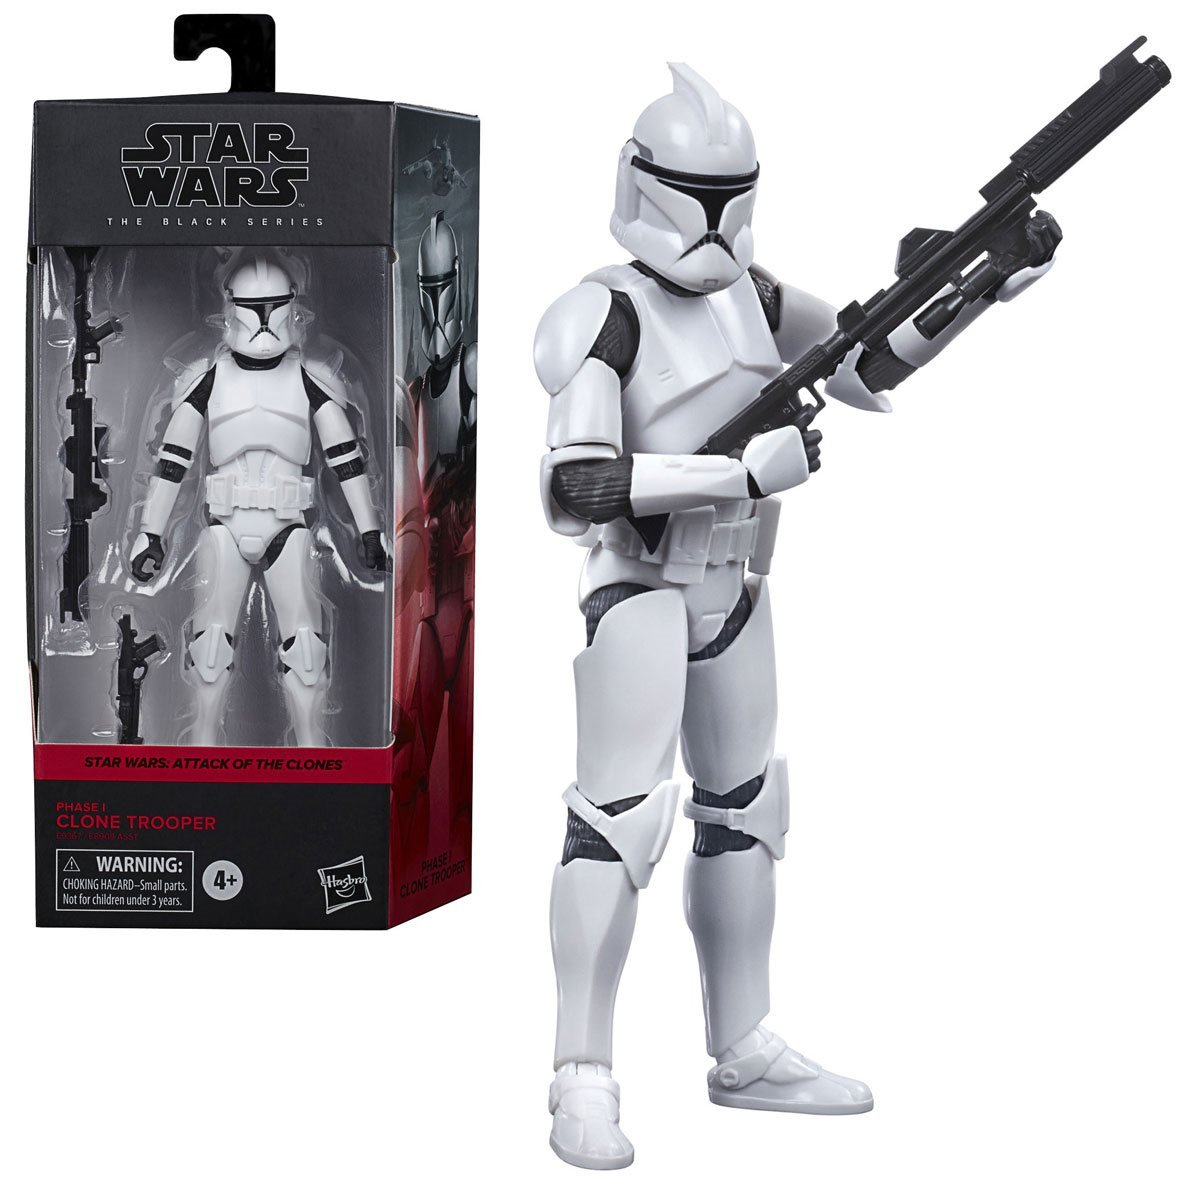 Star Wars The Black Series Clone Trooper AOTC 6-Inch Action Figure画像